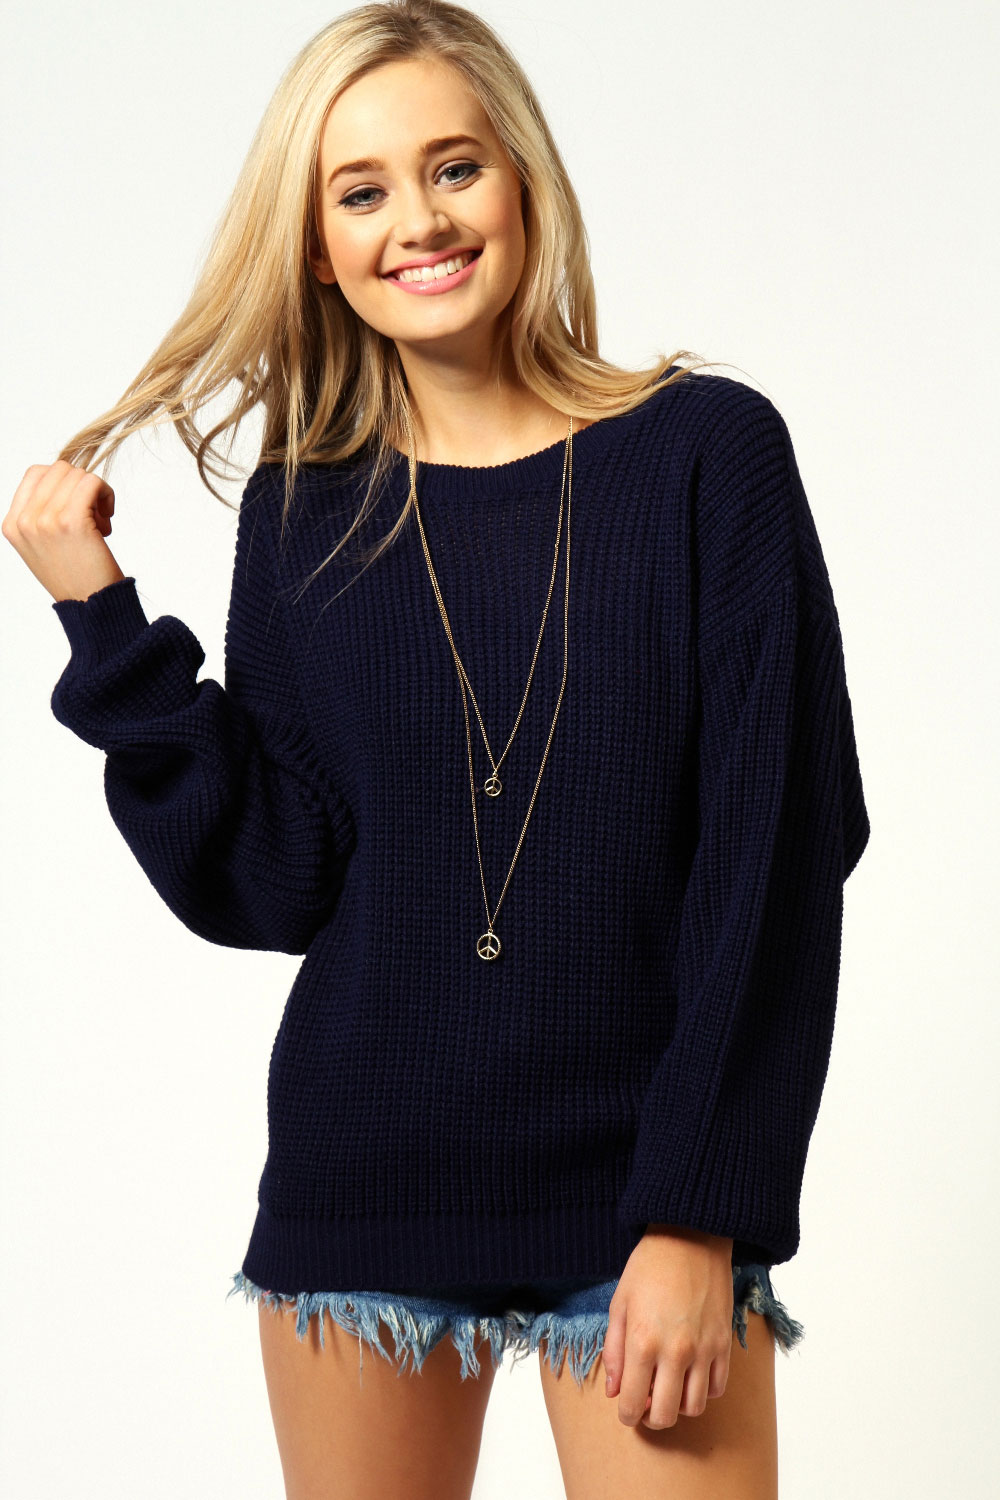 Women's jumpers Whether it's a classic v-neck over a hipster shirt, or sumptuous cashmere roll neck, take your pick from our selection of women's jumpers from .